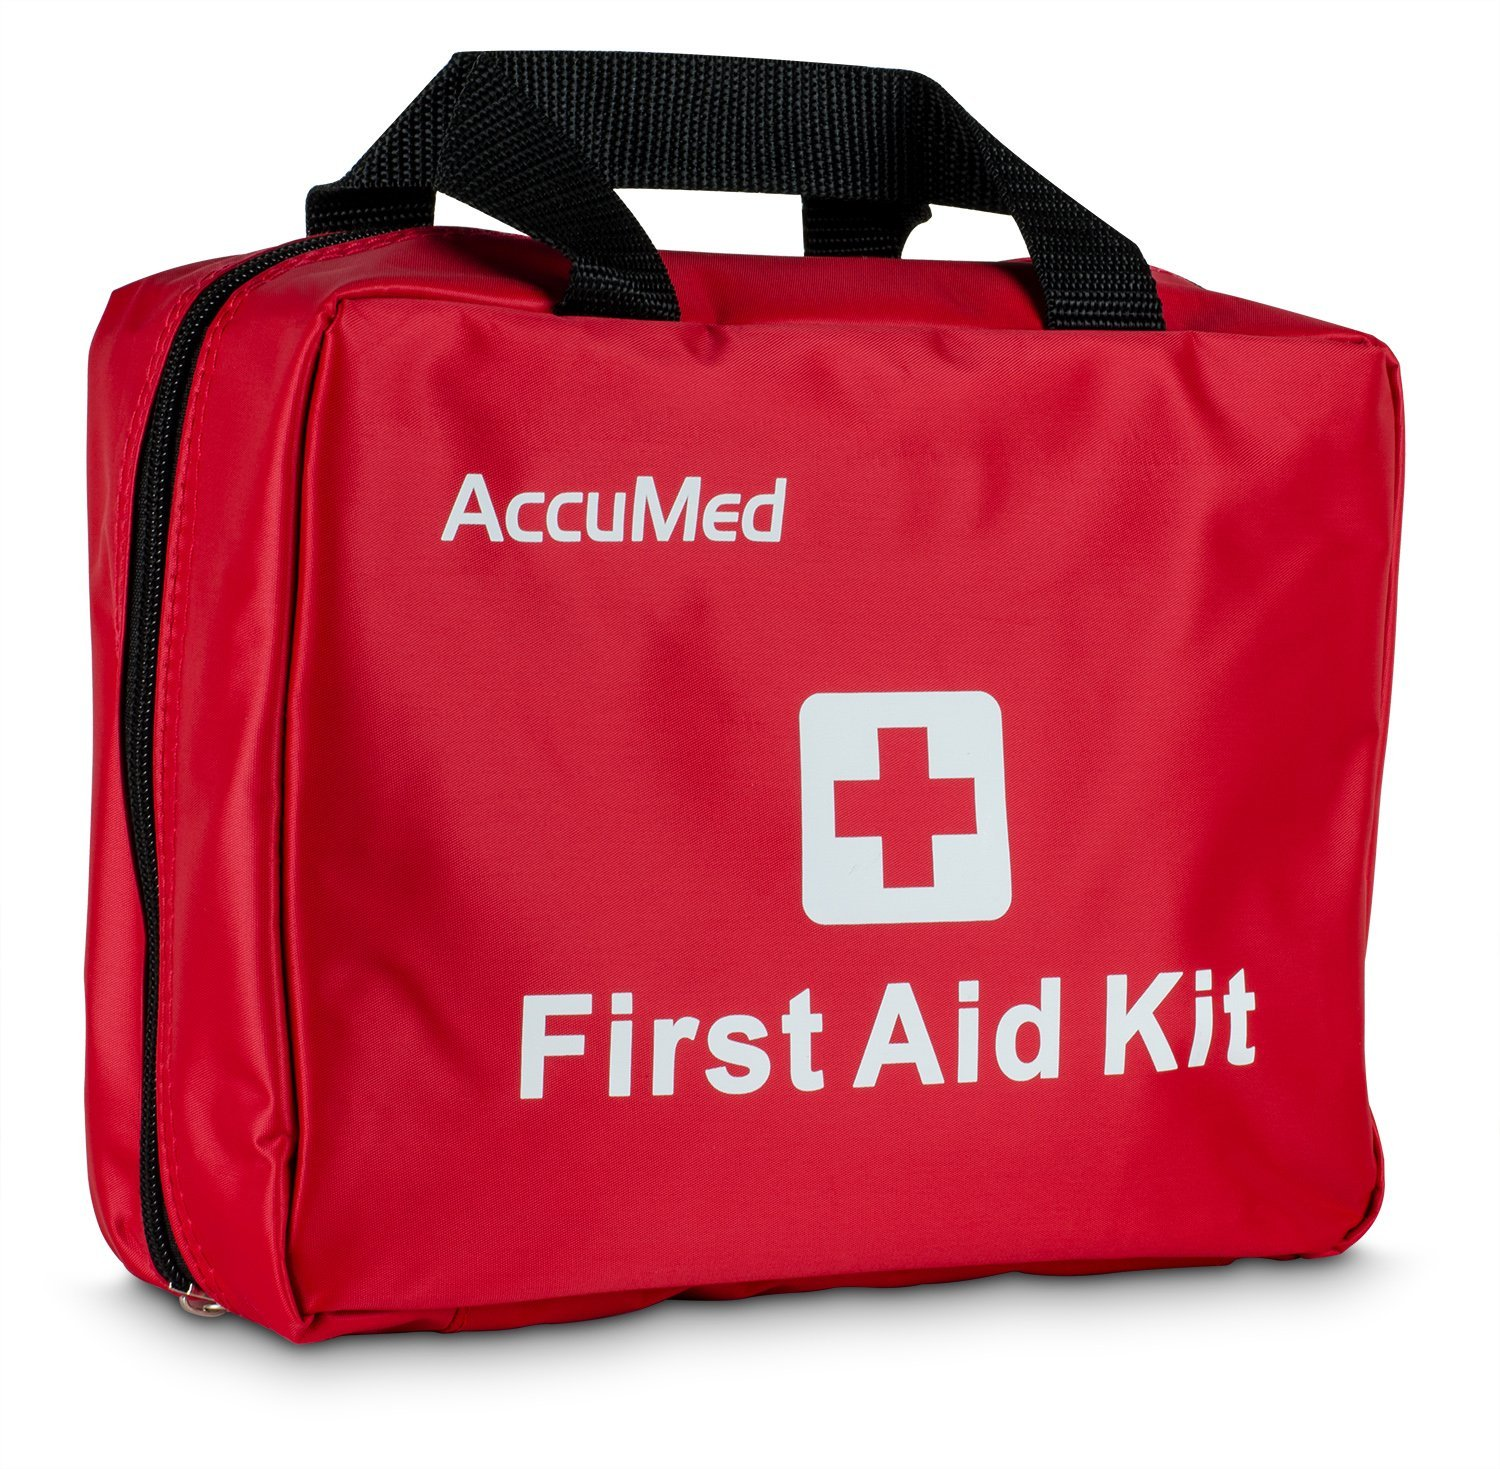 AccuMed Complete First Aid Kit 85-Piece Kit w  23 Unique Items Perfect for Camping, Hiking, and all Outdoor Adventures! by Amcrest